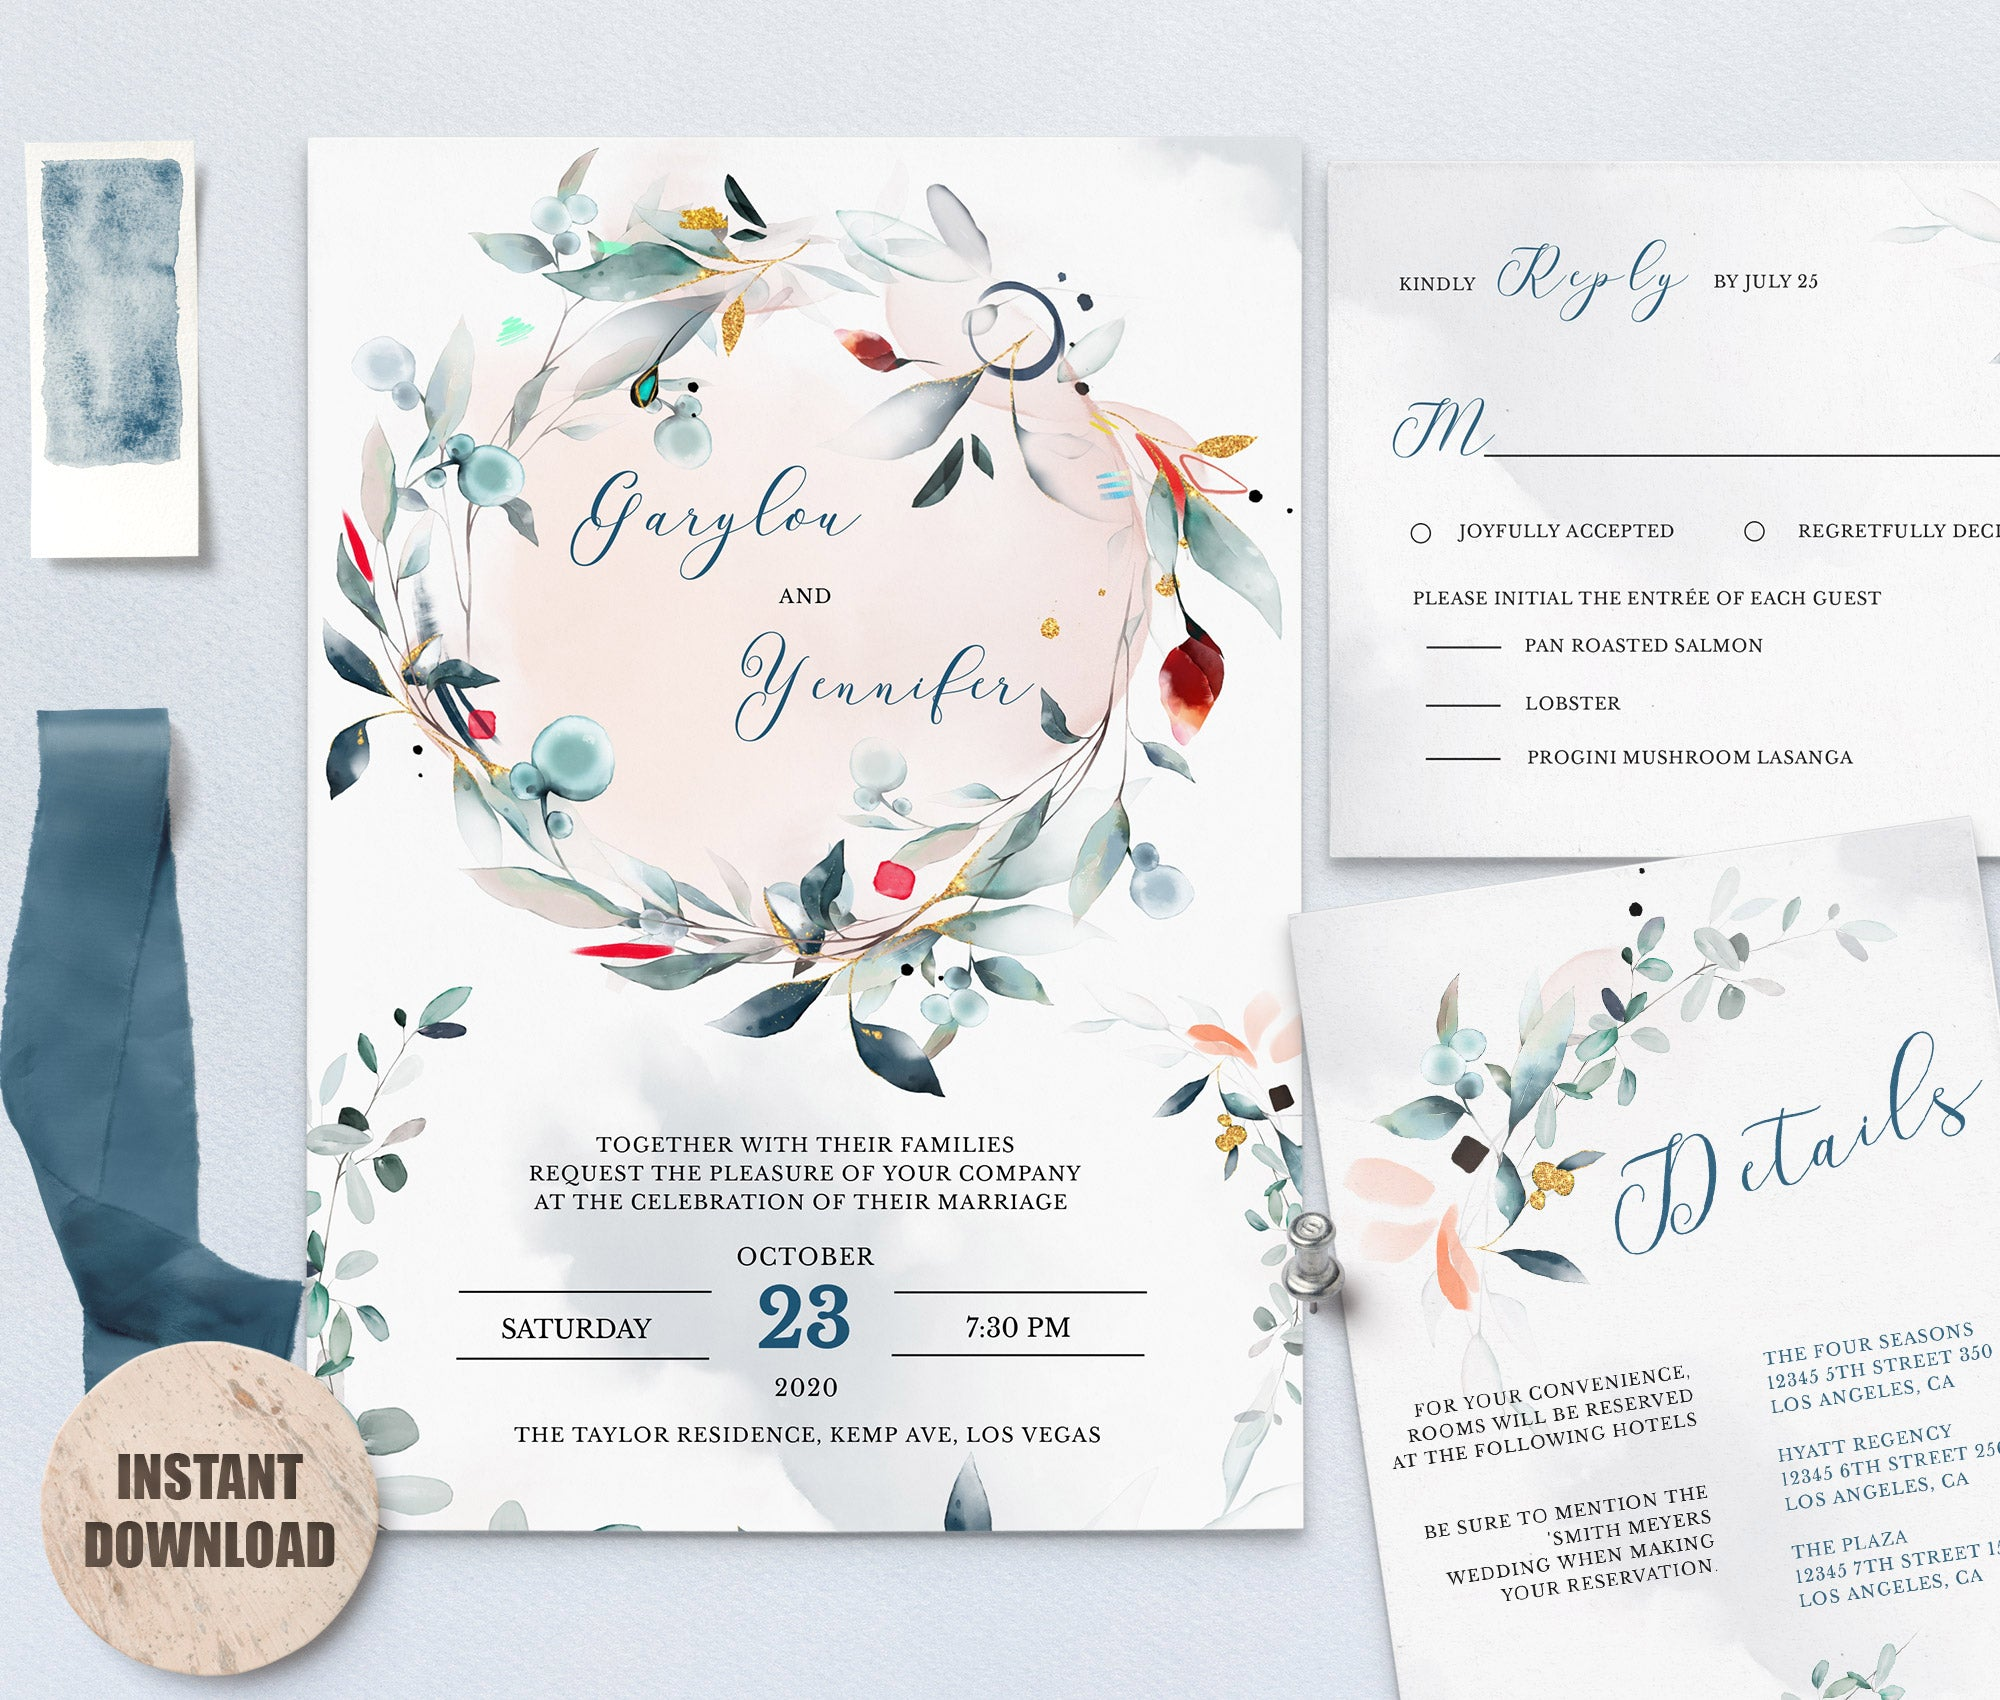 SPMR - Wedding Template Bundles set 2 - Greenlanderdesign